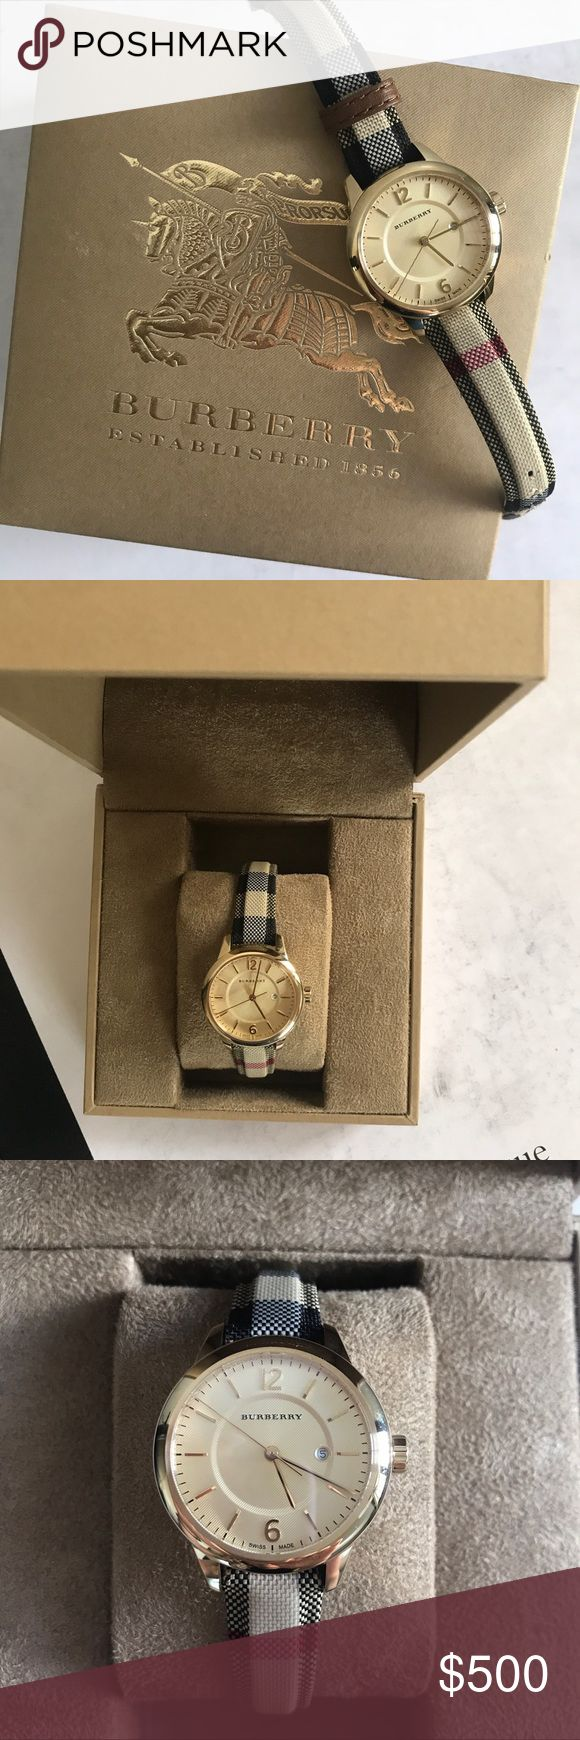 """BURBERRY Honey Check Ladies Watch Only worn once, reasonable offers only.  This design of rich, radiant goldtone stainless steel centers upon a fabric strap in Burberry's signature check, for a timepiece imbued with the heritage appeal of brand that's synonymous with sophistication. Swiss quartz movement Water resistant to 5 ATM Round polished light goldtone ion-plated stainless steel case, 32mm (1.25"""") Polished bezel Sapphire crystal Twill honey dial Applied numeral and bar hour markers…"""